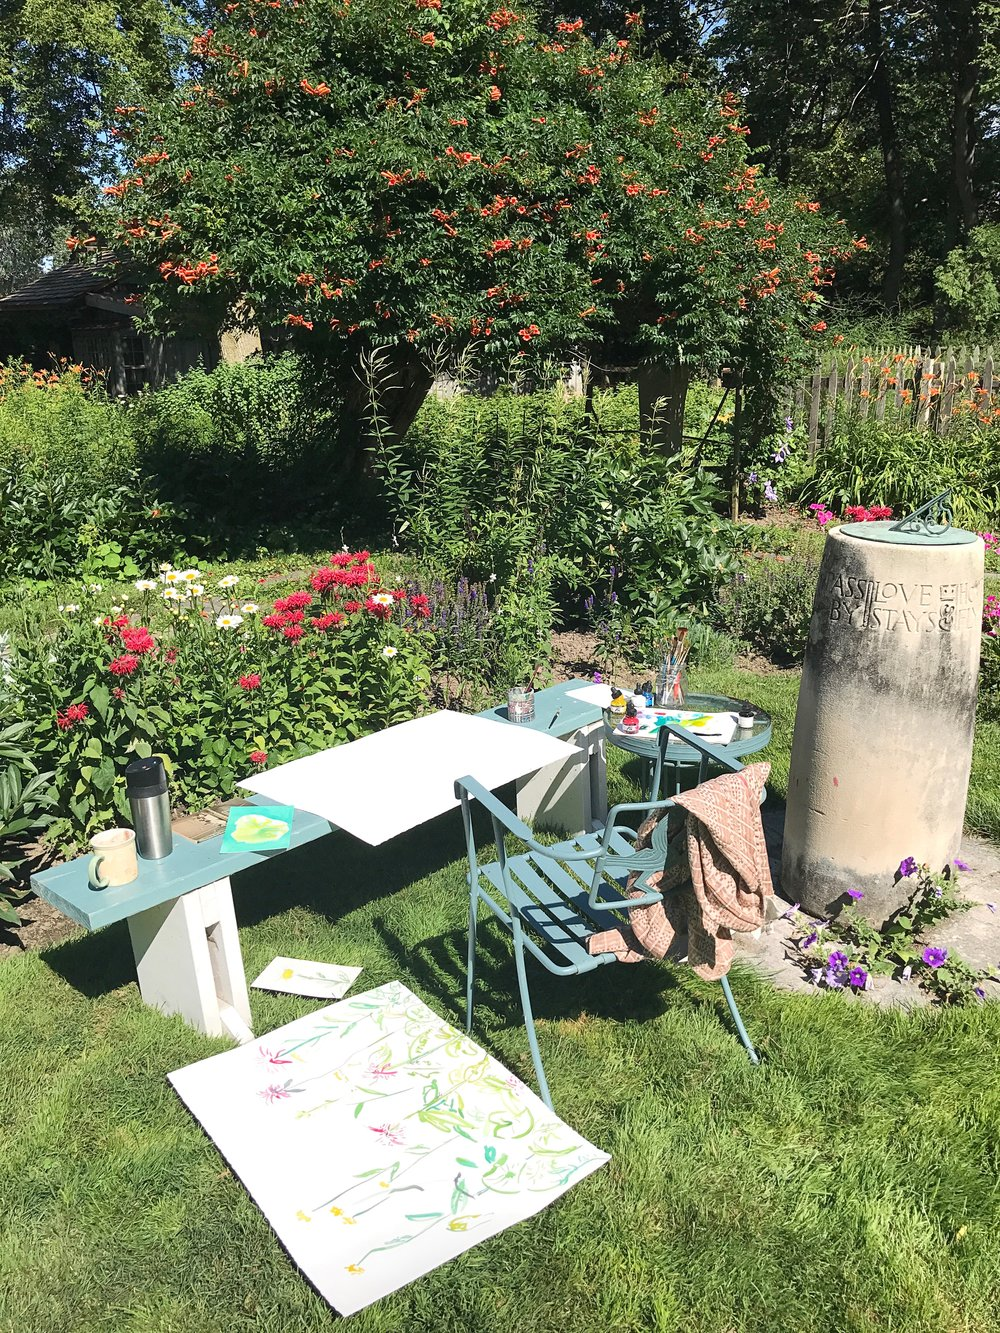 A morning spent painting in the garden. The sundial, designed by Shaw, has this verse inscribed around it: Hours Fly, Flowers Die, New Ways, New Days, Pass By, Love Stays